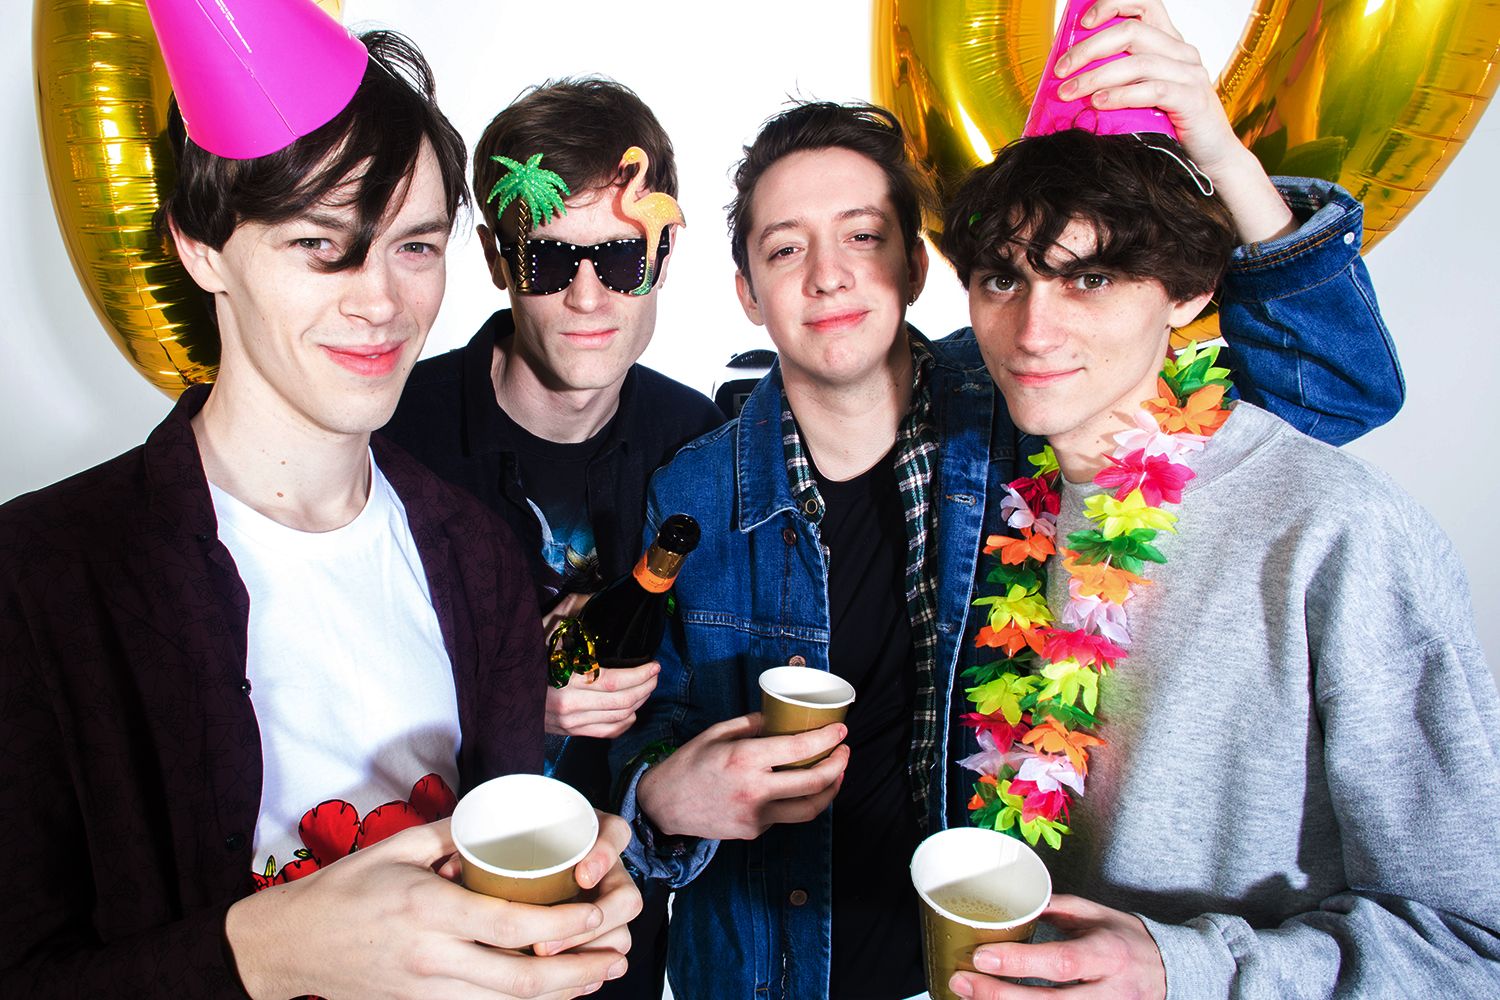 """Gengahr: """"The hardest part of starting a band is finding people you work well with"""""""